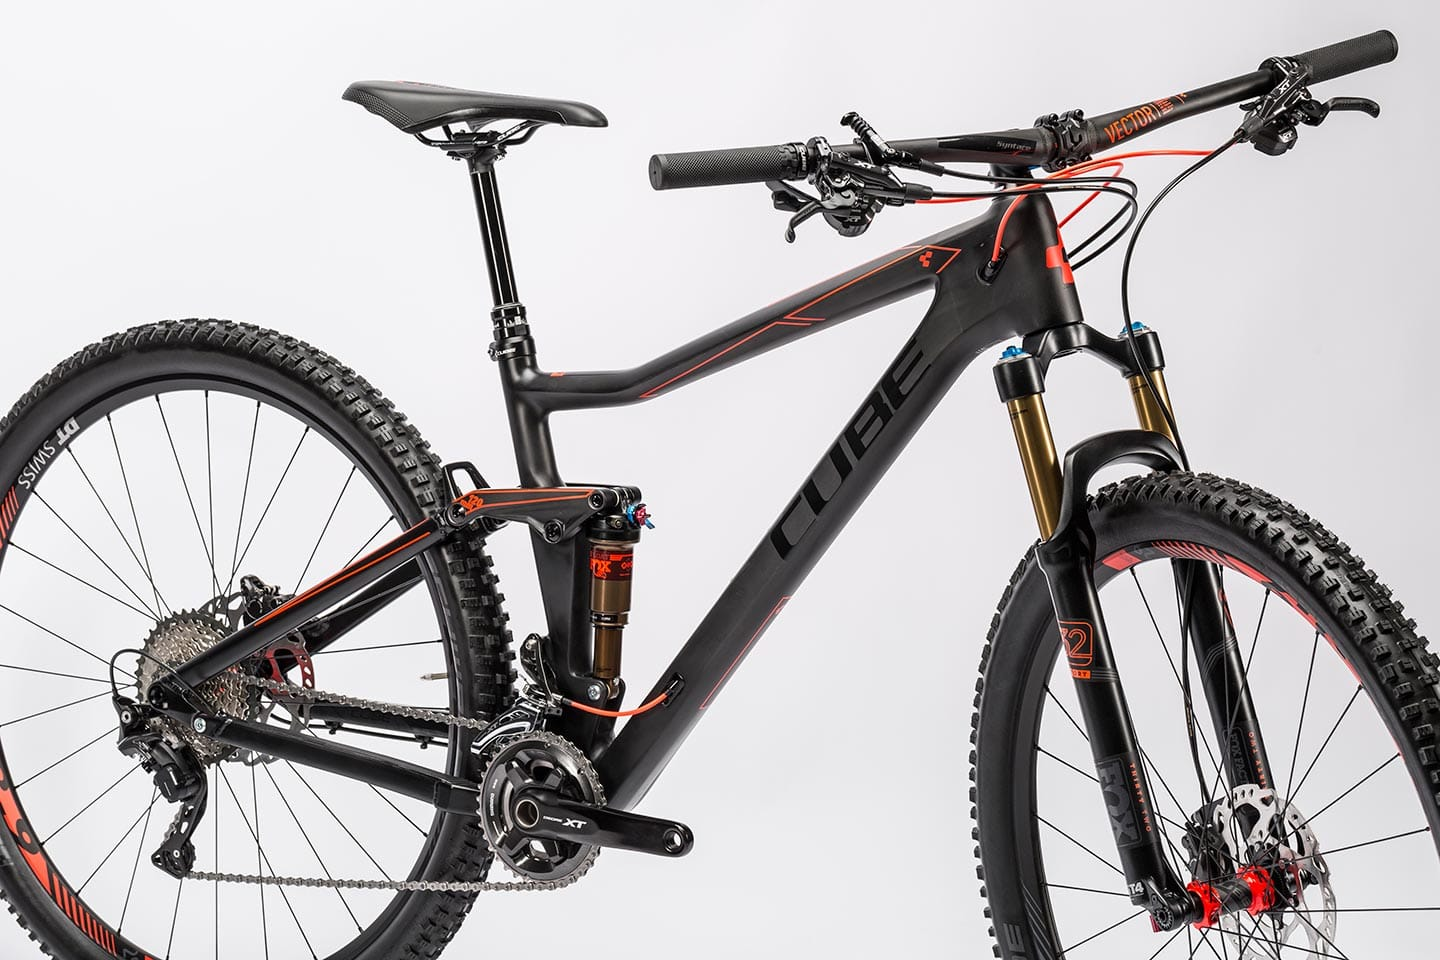 cube stereo 120 hpc sl 29 fs mtb bike 2016 all terrain cycles. Black Bedroom Furniture Sets. Home Design Ideas